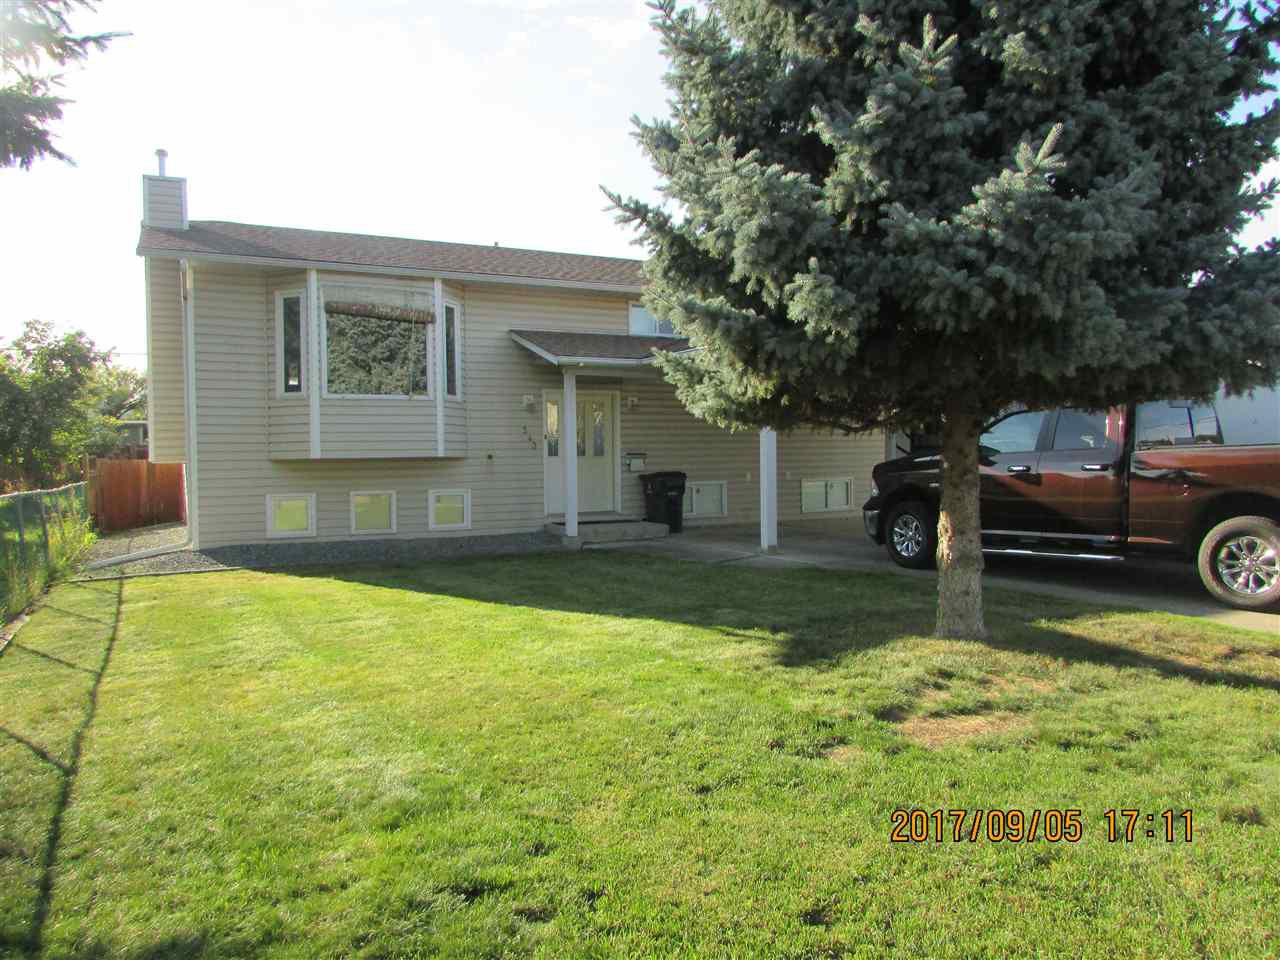 Main Photo: 543 DOUGLAS Street in Prince George: Central House for sale (PG City Central (Zone 72))  : MLS®# R2203274